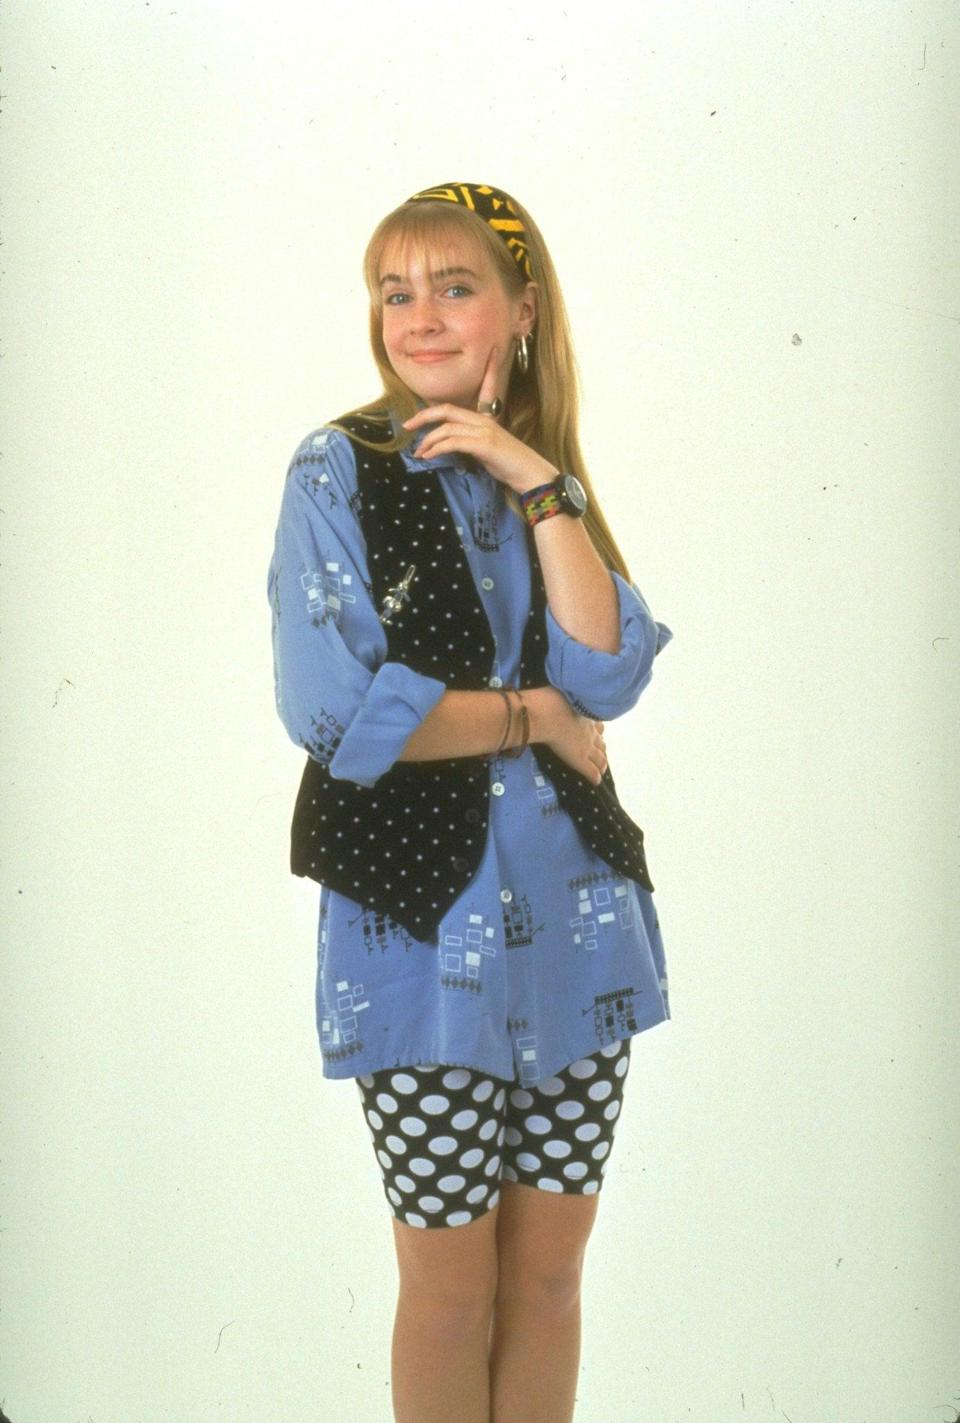 <p>To play the sarcastic leading lady from <b>Clarissa Explains It All</b>, you need spandex biker shorts, a headband, an oversize shirt, and a menswear vest.</p>